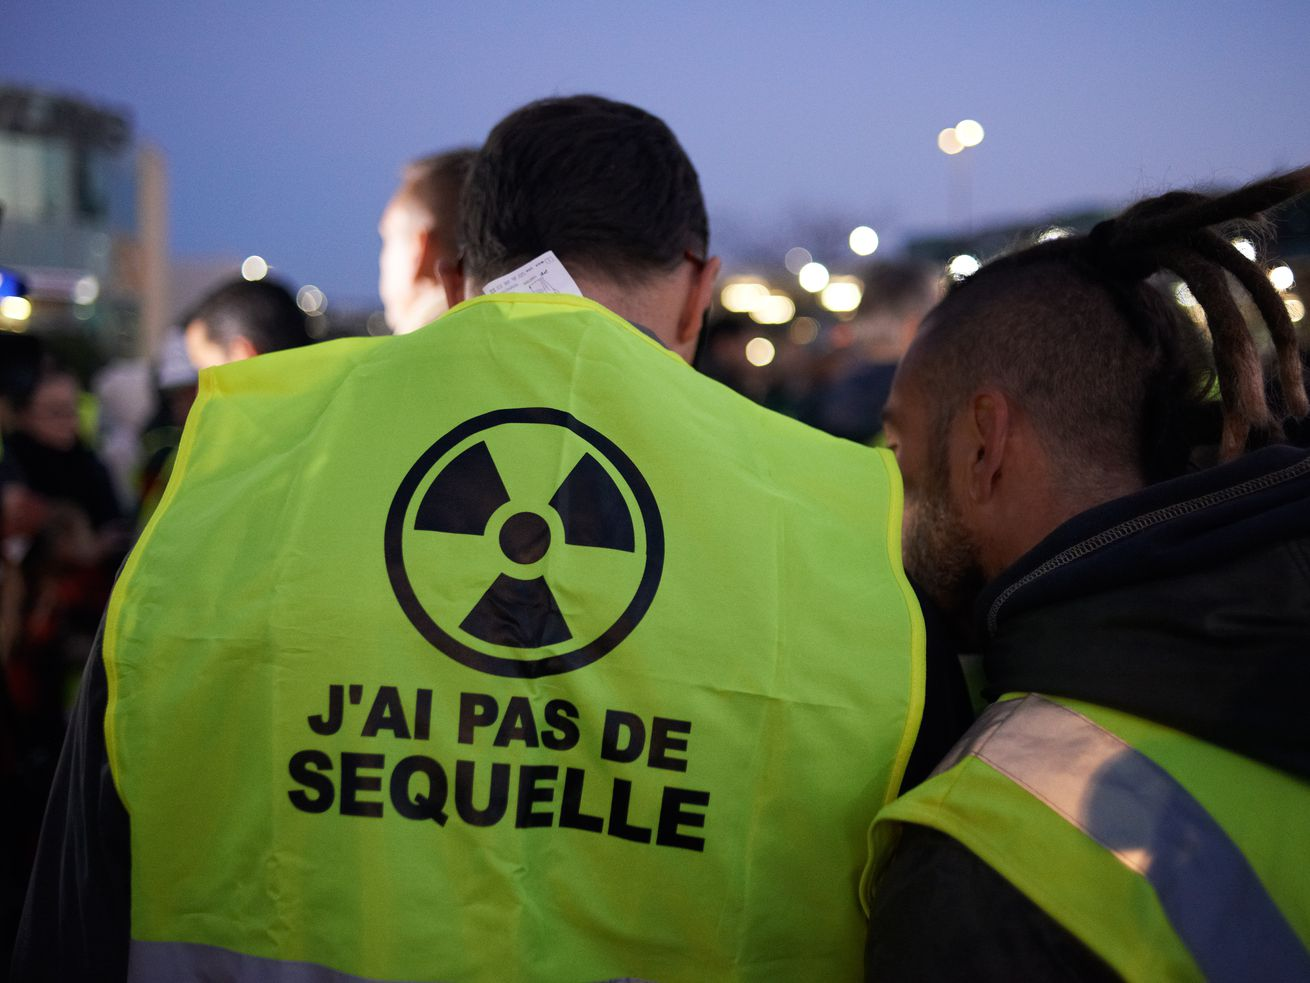 """A protester in a yellow vest that reads """"J'ai pas de sequelle"""" in French, """"I have no after-effects"""" in English."""